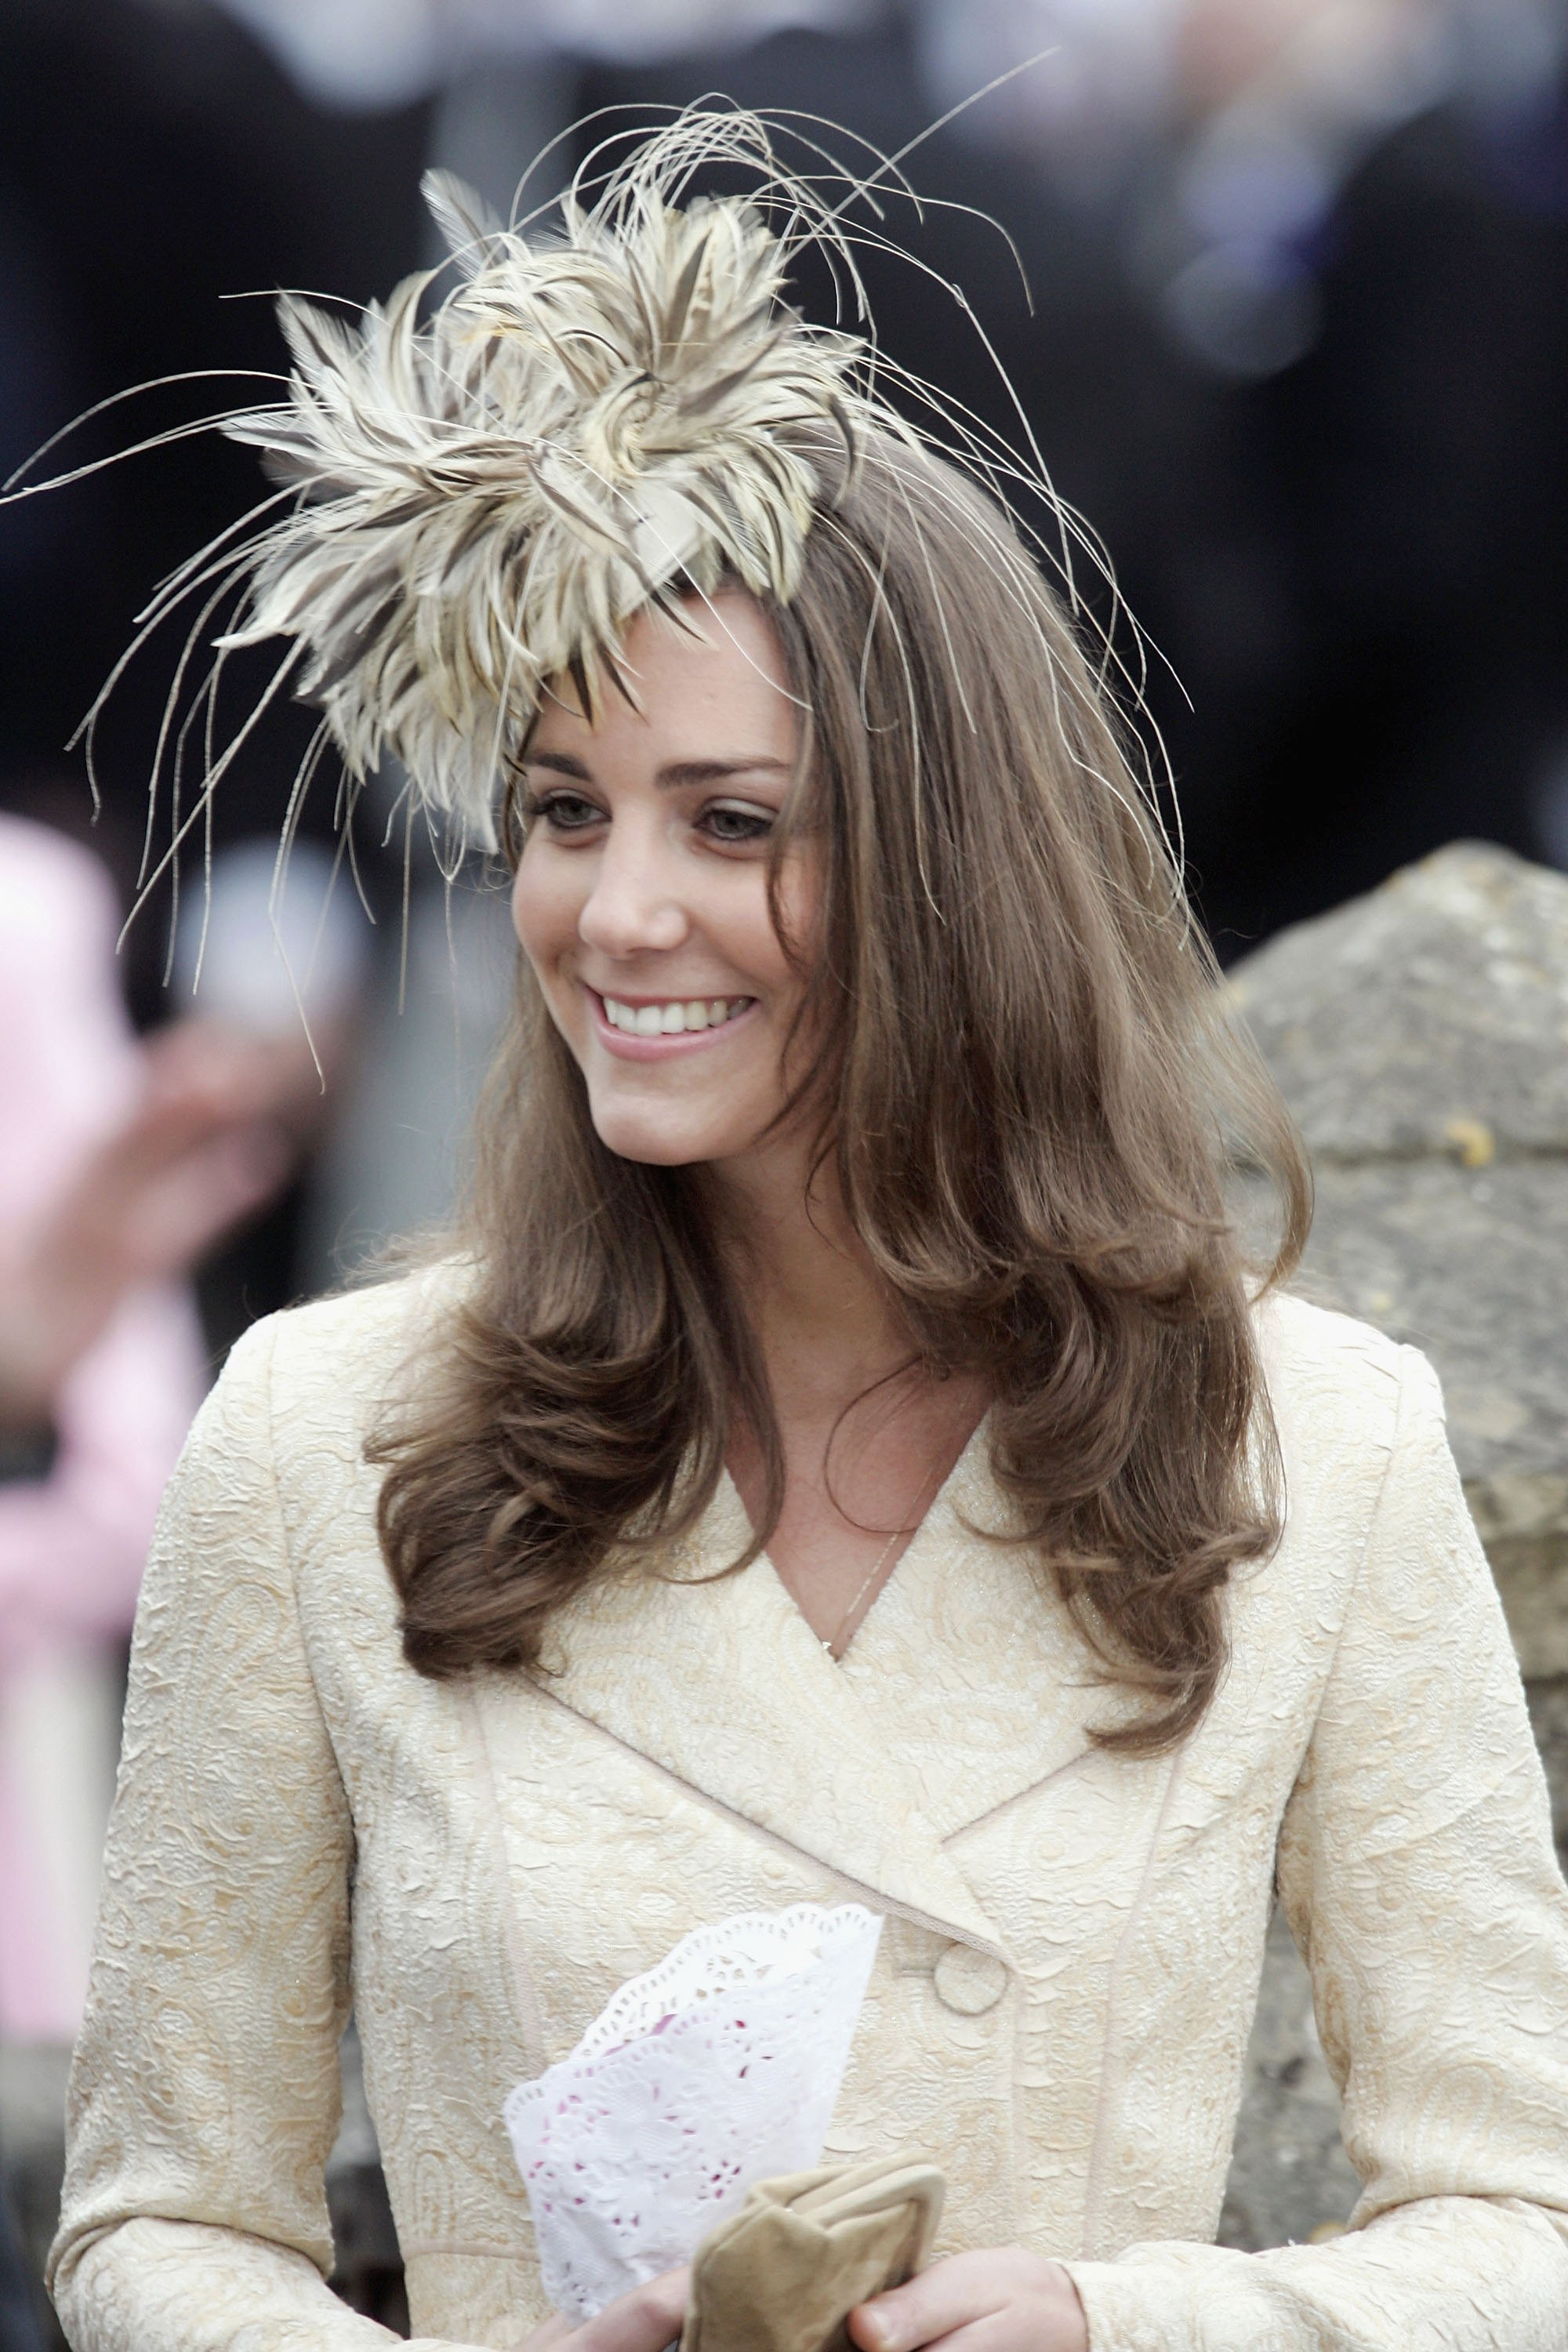 Image Source: Getty Images/Kate Middleton wearing a cream embroidered blazer and a matching hat